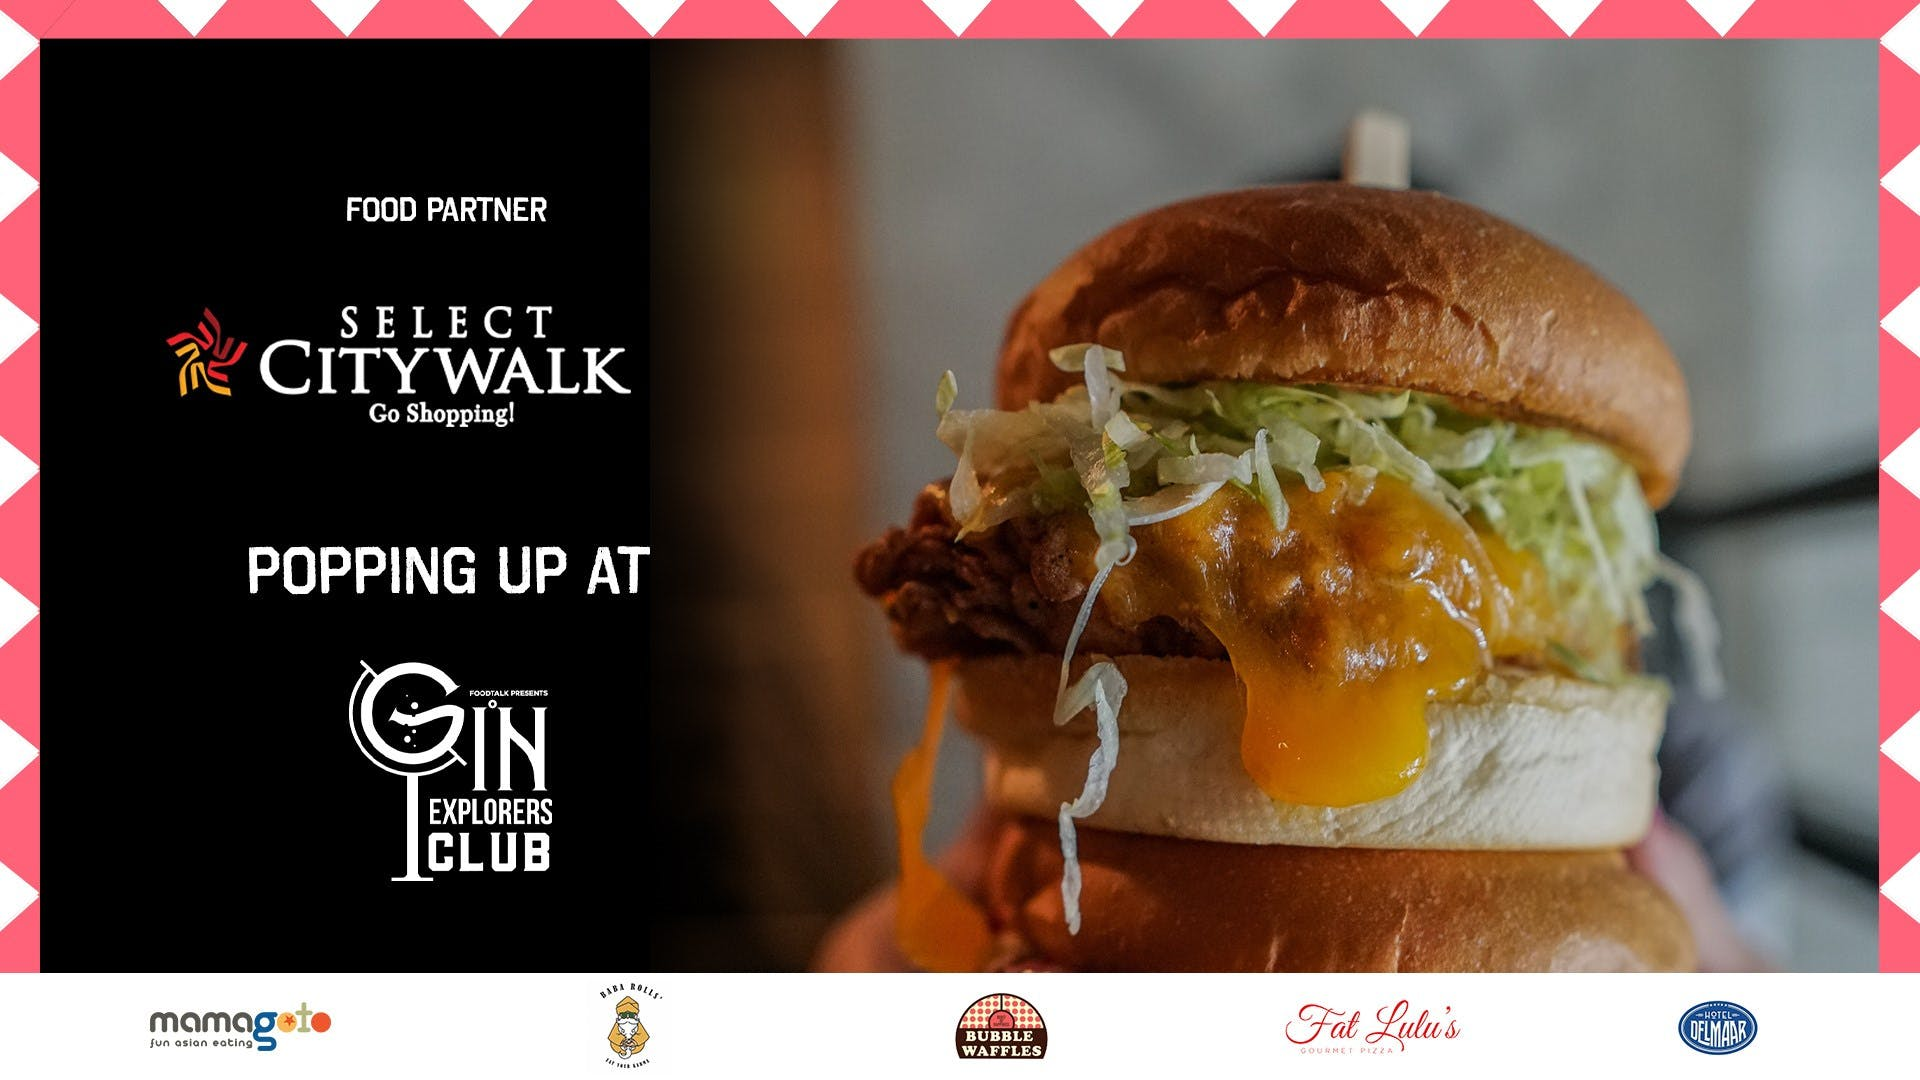 image - Let The Celebrations Be-Gin! Grin Away At The Gin Fest This February At Select City Walk!